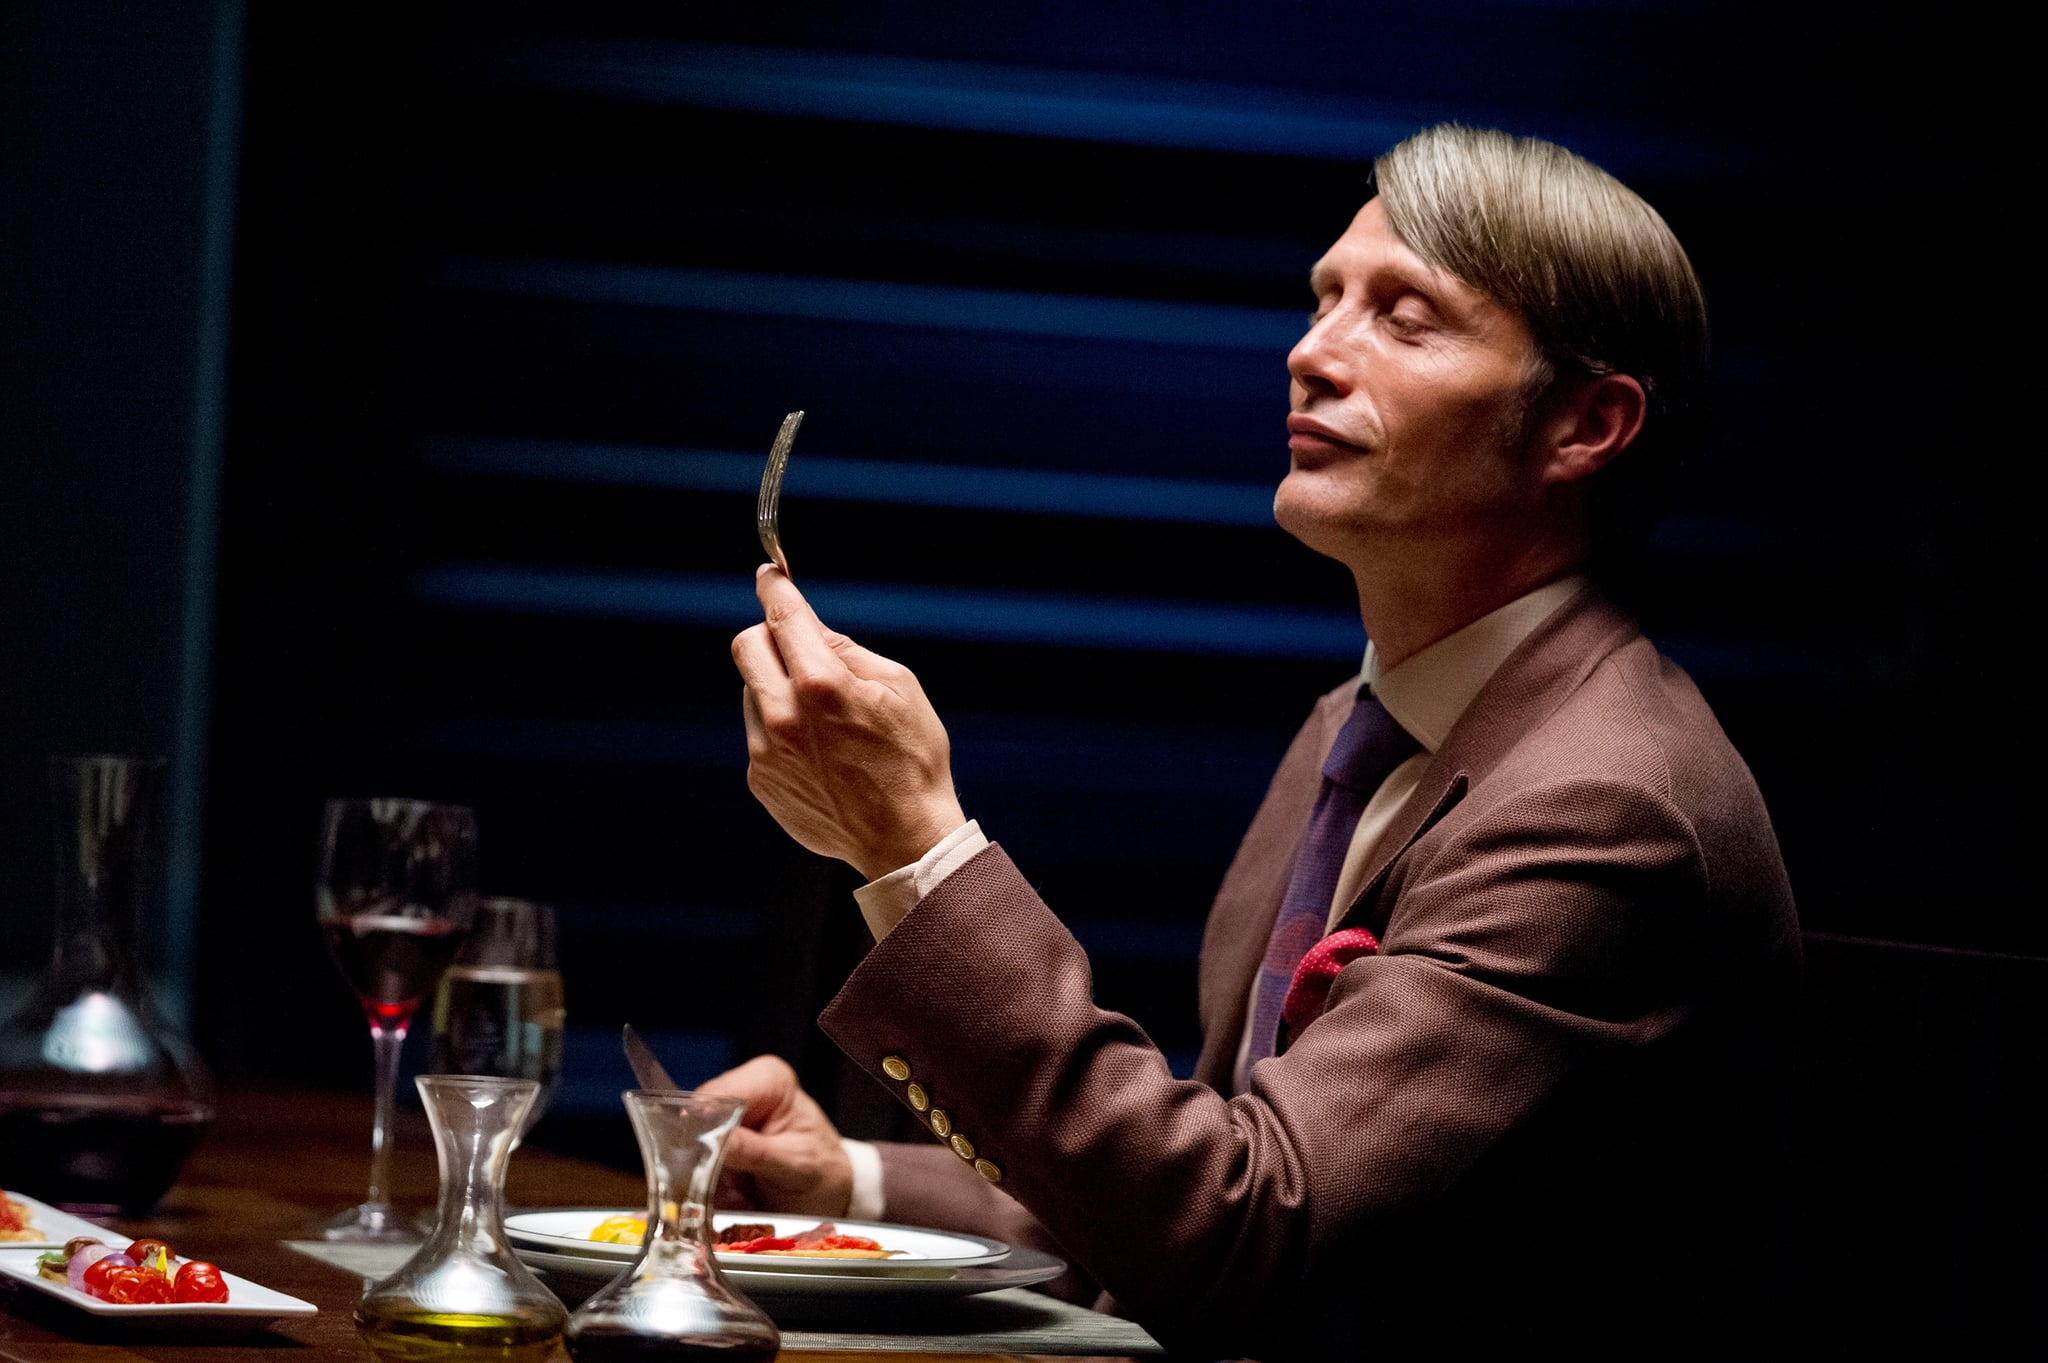 HANNIBAL, Mads Mikkelson in 'Apertif' (Season 1, Episode 1, aired April 4, 2013), 2013-, ph: Brooke Palmer/NBC/courtesy Everett Collection